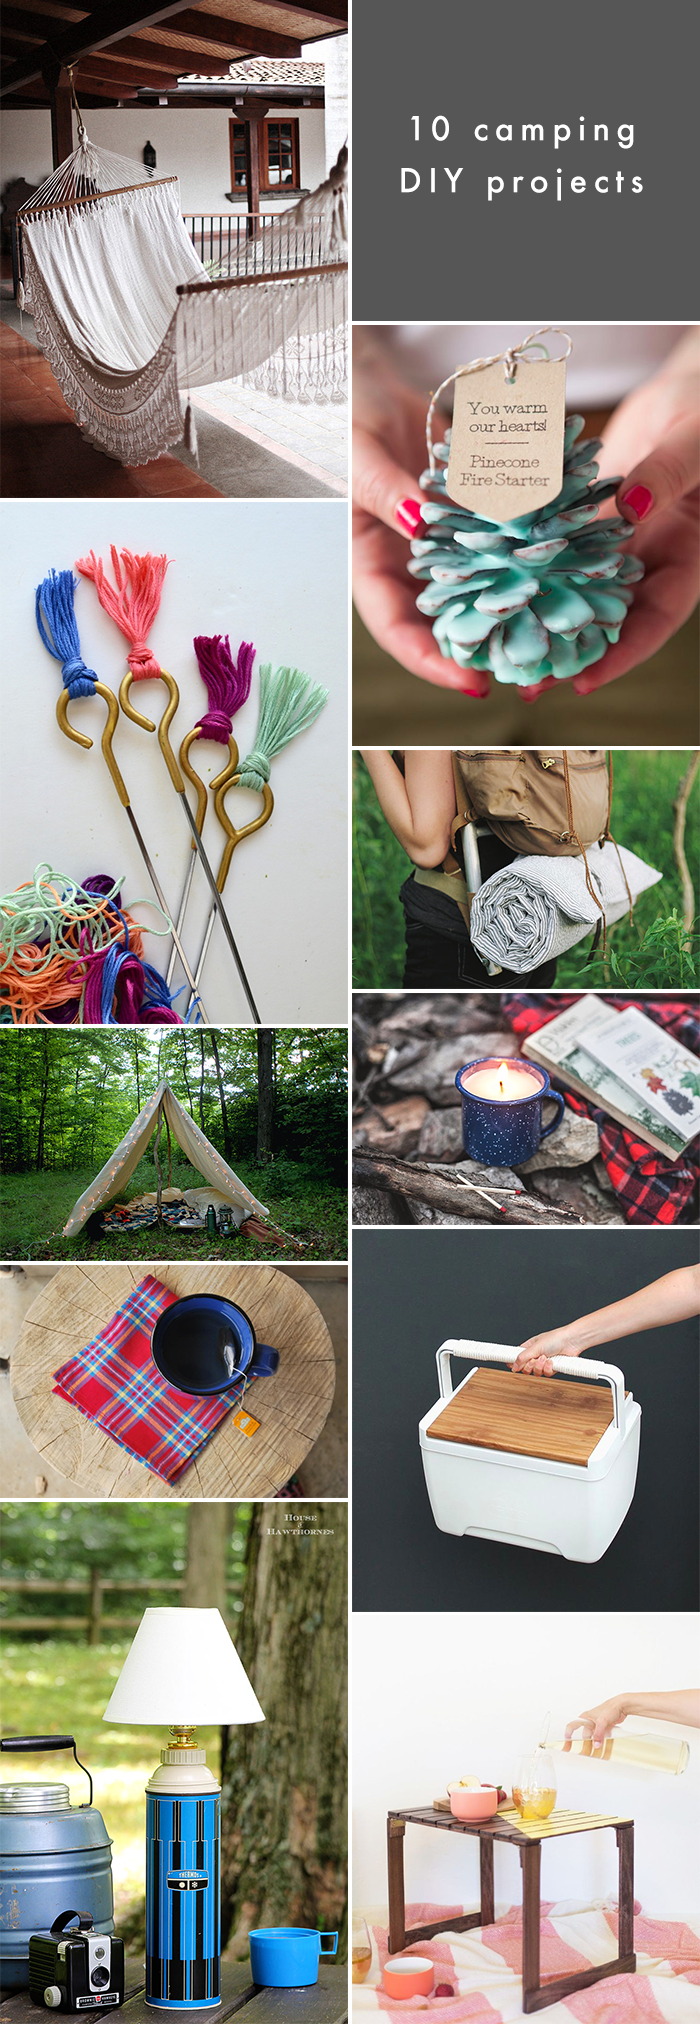 10 Camping DIY Projects to Try This Summer